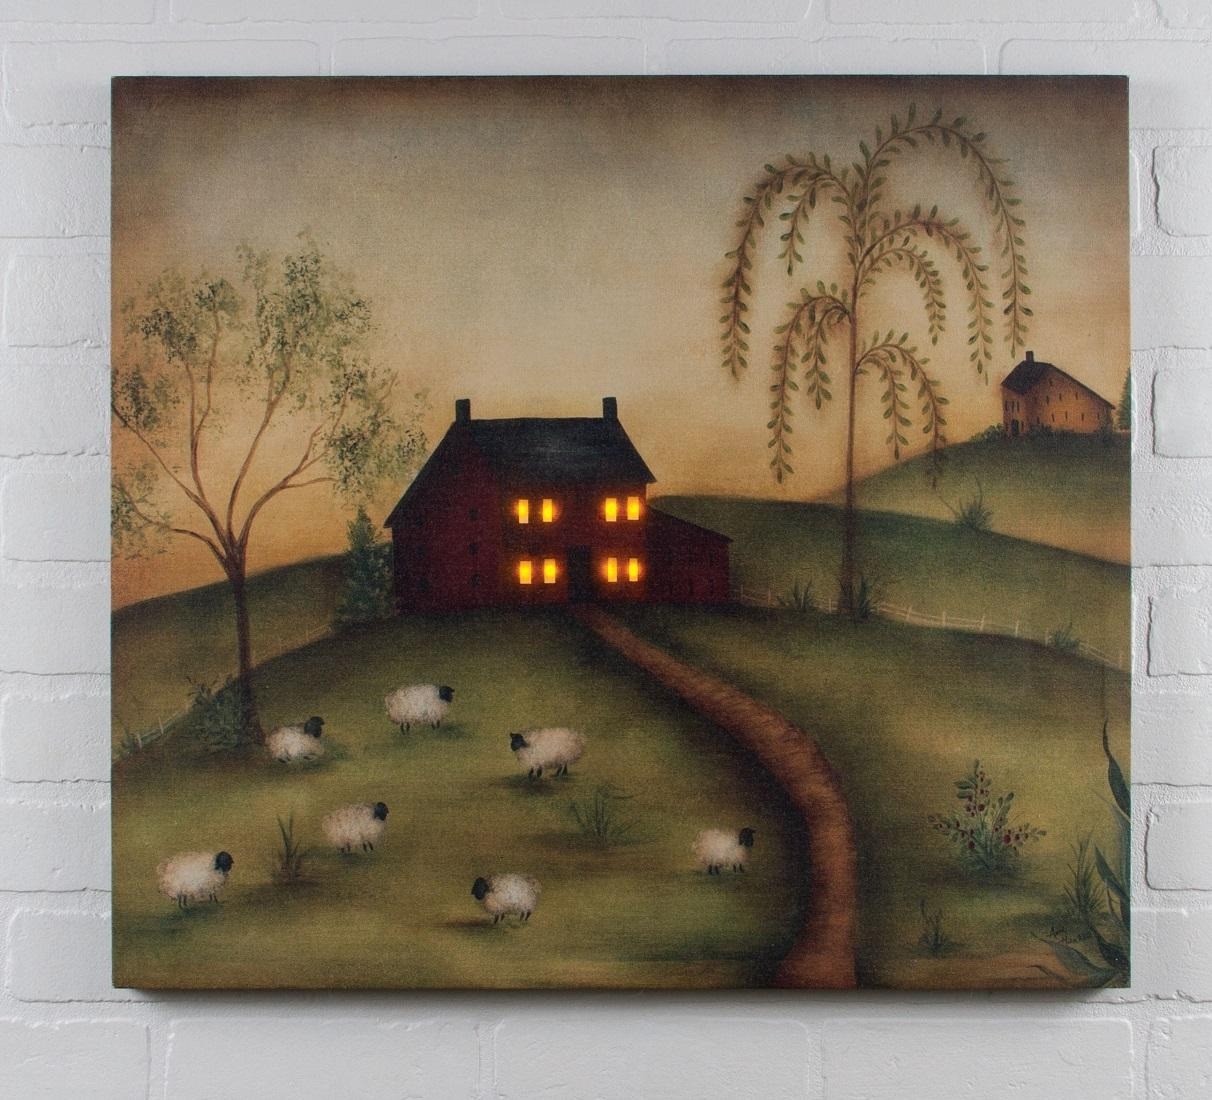 Radiance Lighted Canvas Good Life Folk Art Saltbox House, Sheep With Billy Jacobs Framed Wall Art Prints (Image 19 of 20)